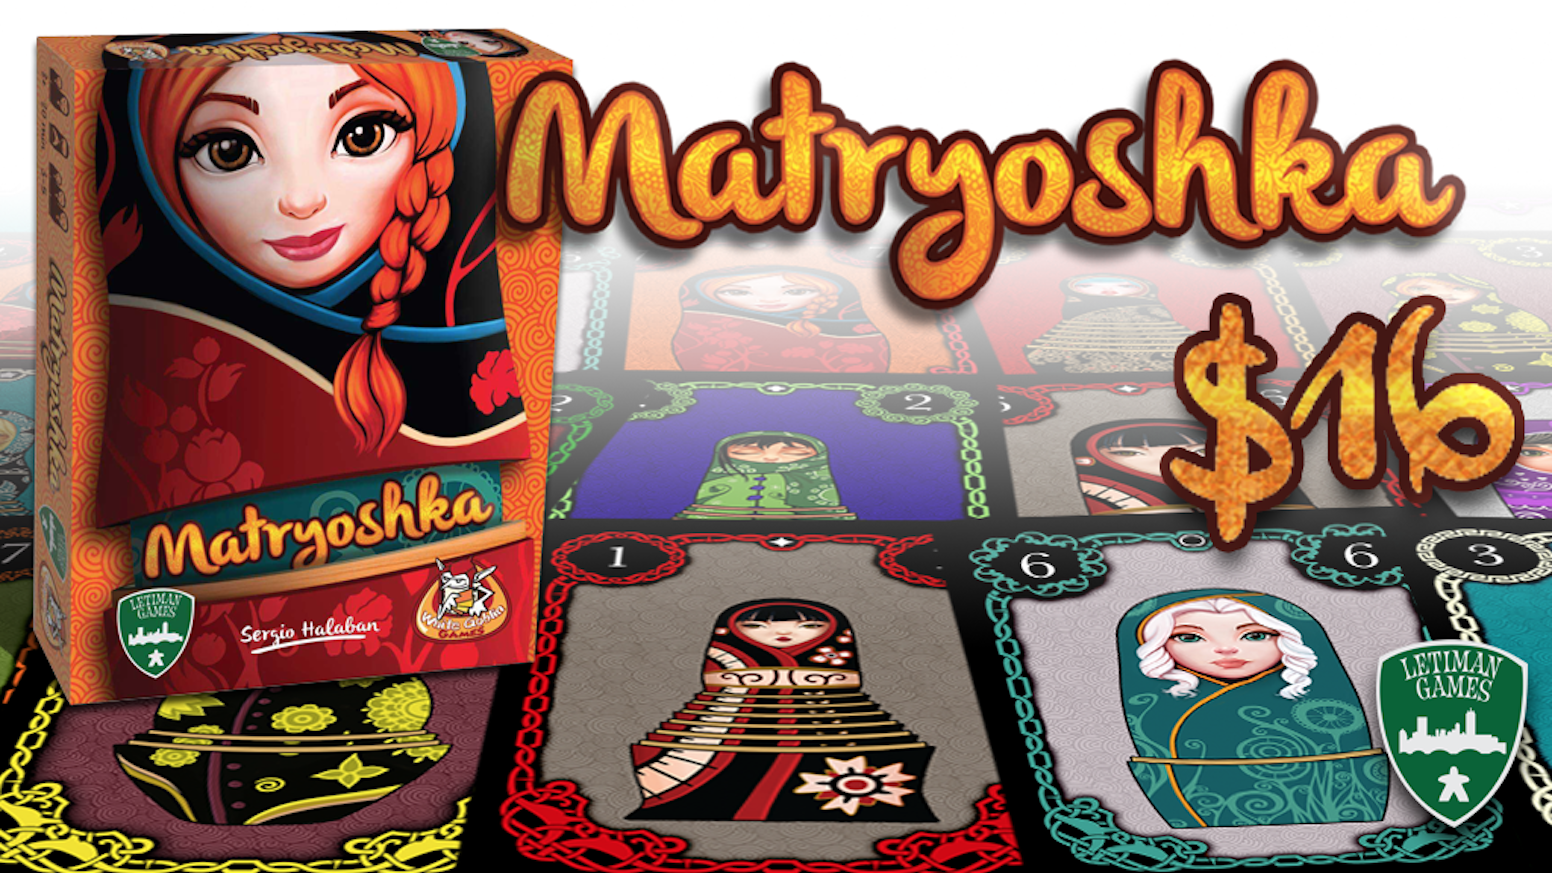 Matryoshka: A set-collection and trading game for 3-5 players! Updated artwork and new deluxe version with exclusive cards!